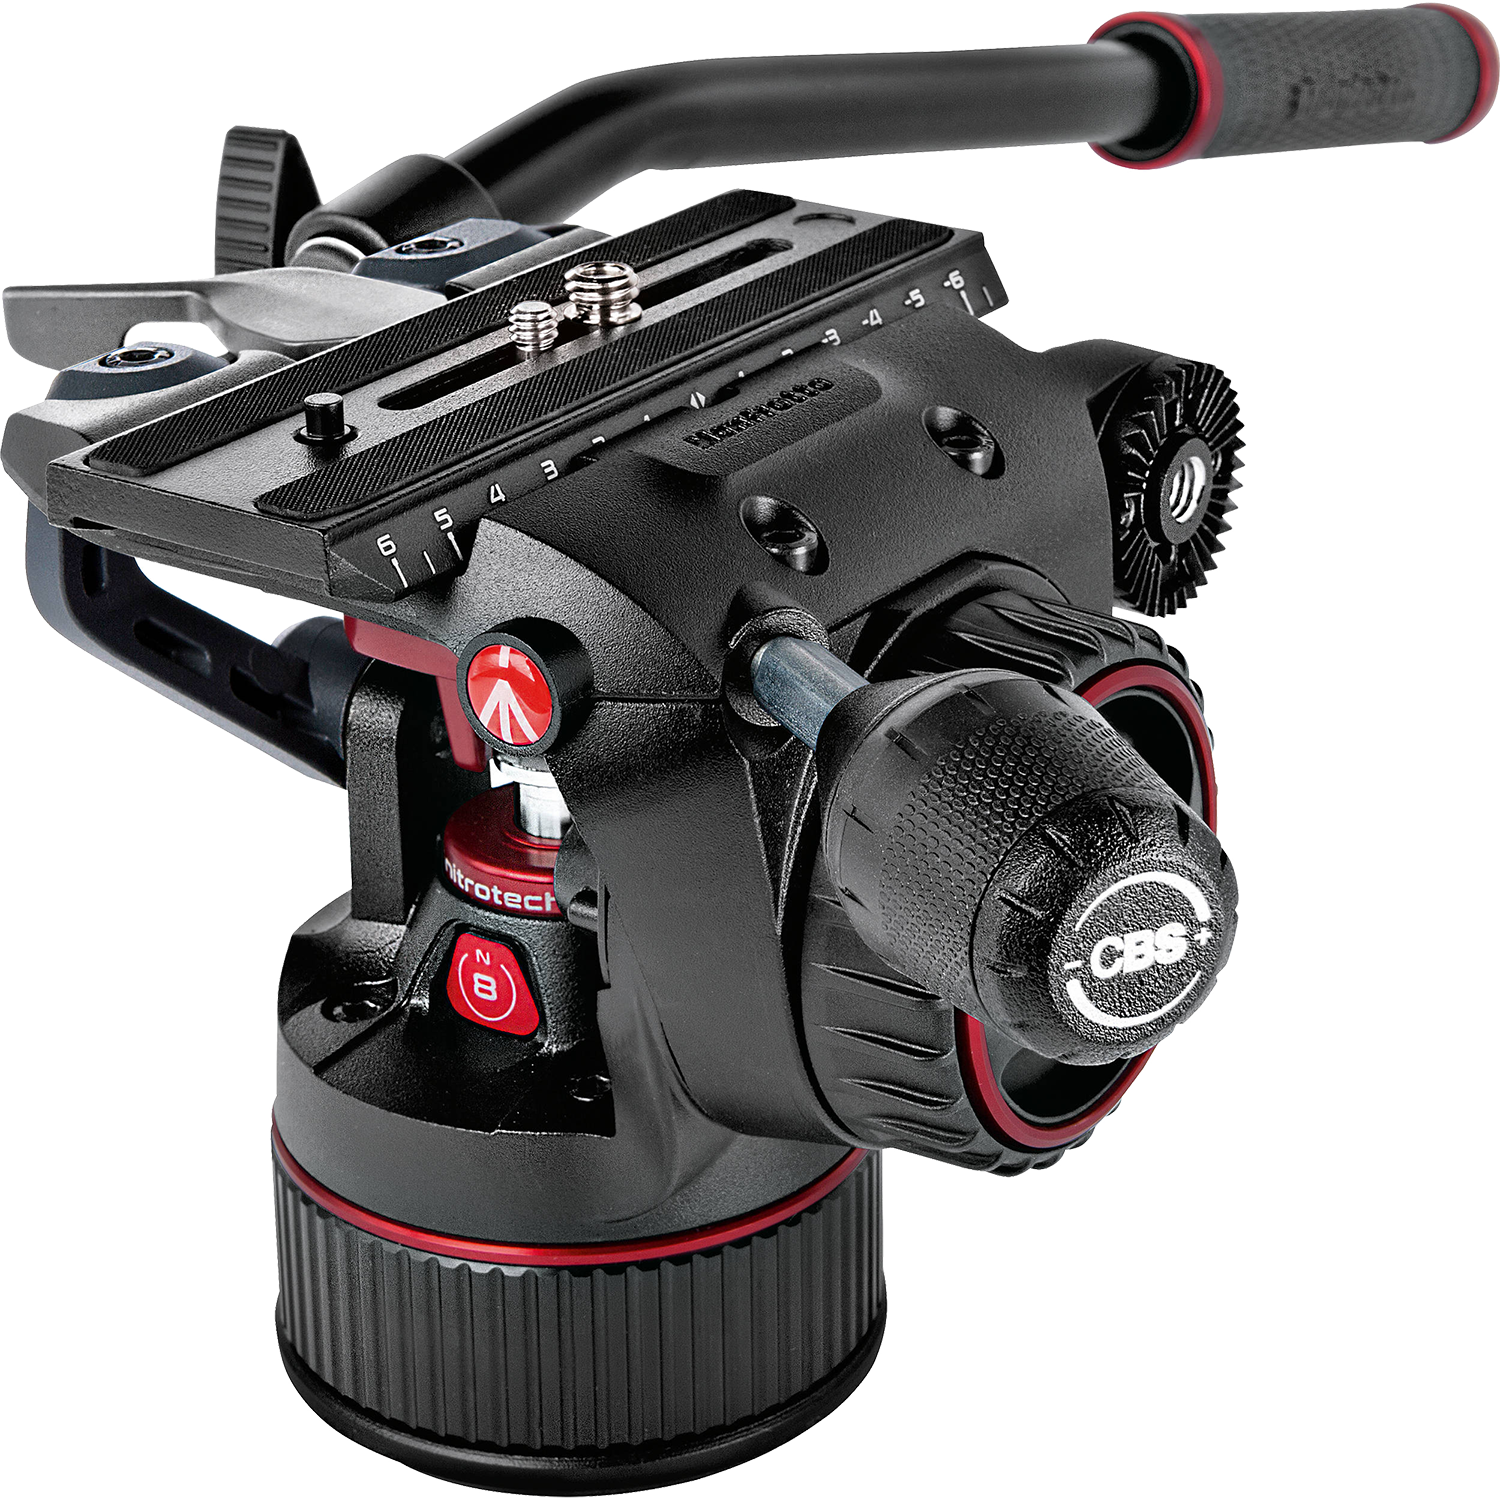 manfrotto n8 head for hire